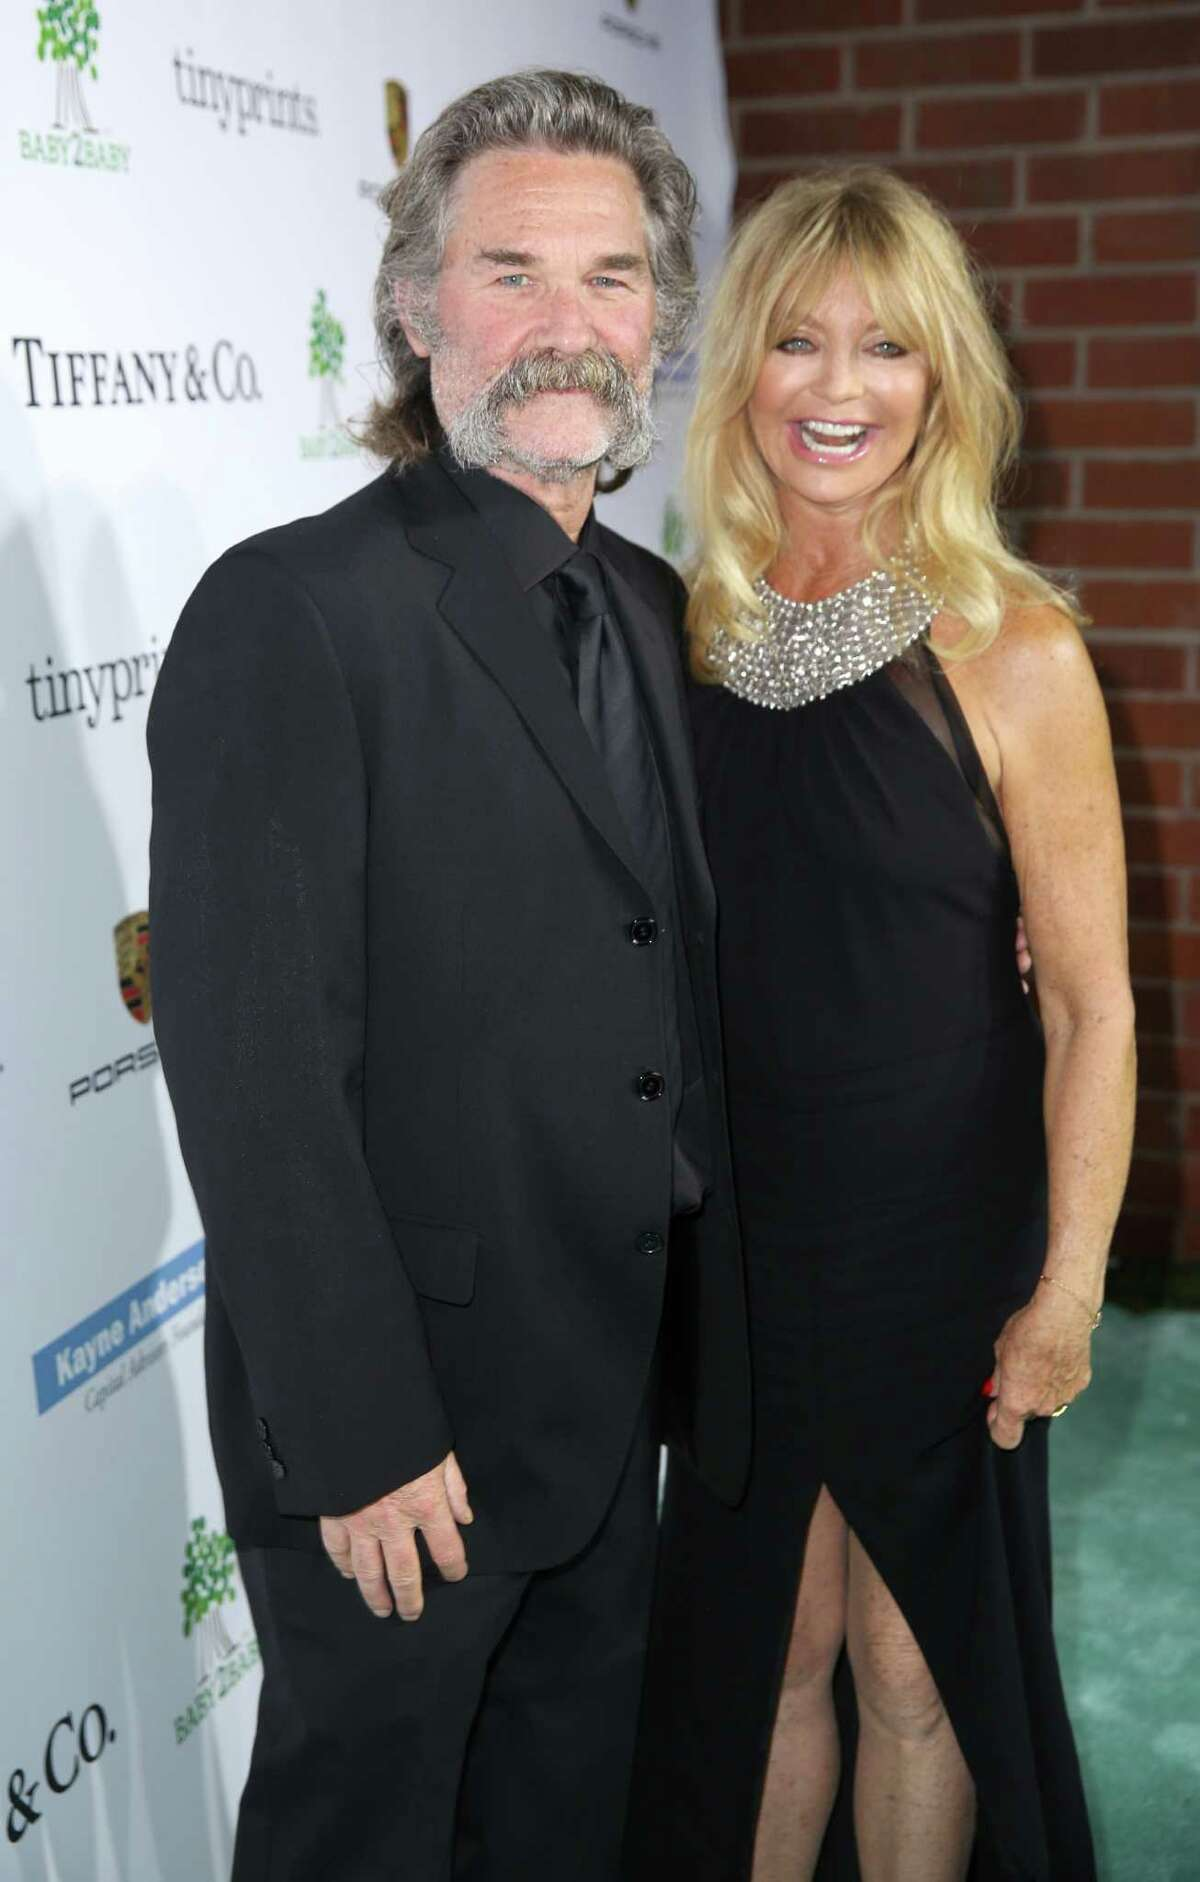 Kurt Russell, left, and Goldie Hawn arrive at the Third annual Baby2Baby Gala honoring Kate Hudson at The Book Bindery on Saturday, Nov. 8, 2014, in Culver City, Calif. (Photo by Matt Sayles/Invision/AP) ORG XMIT: CABR117